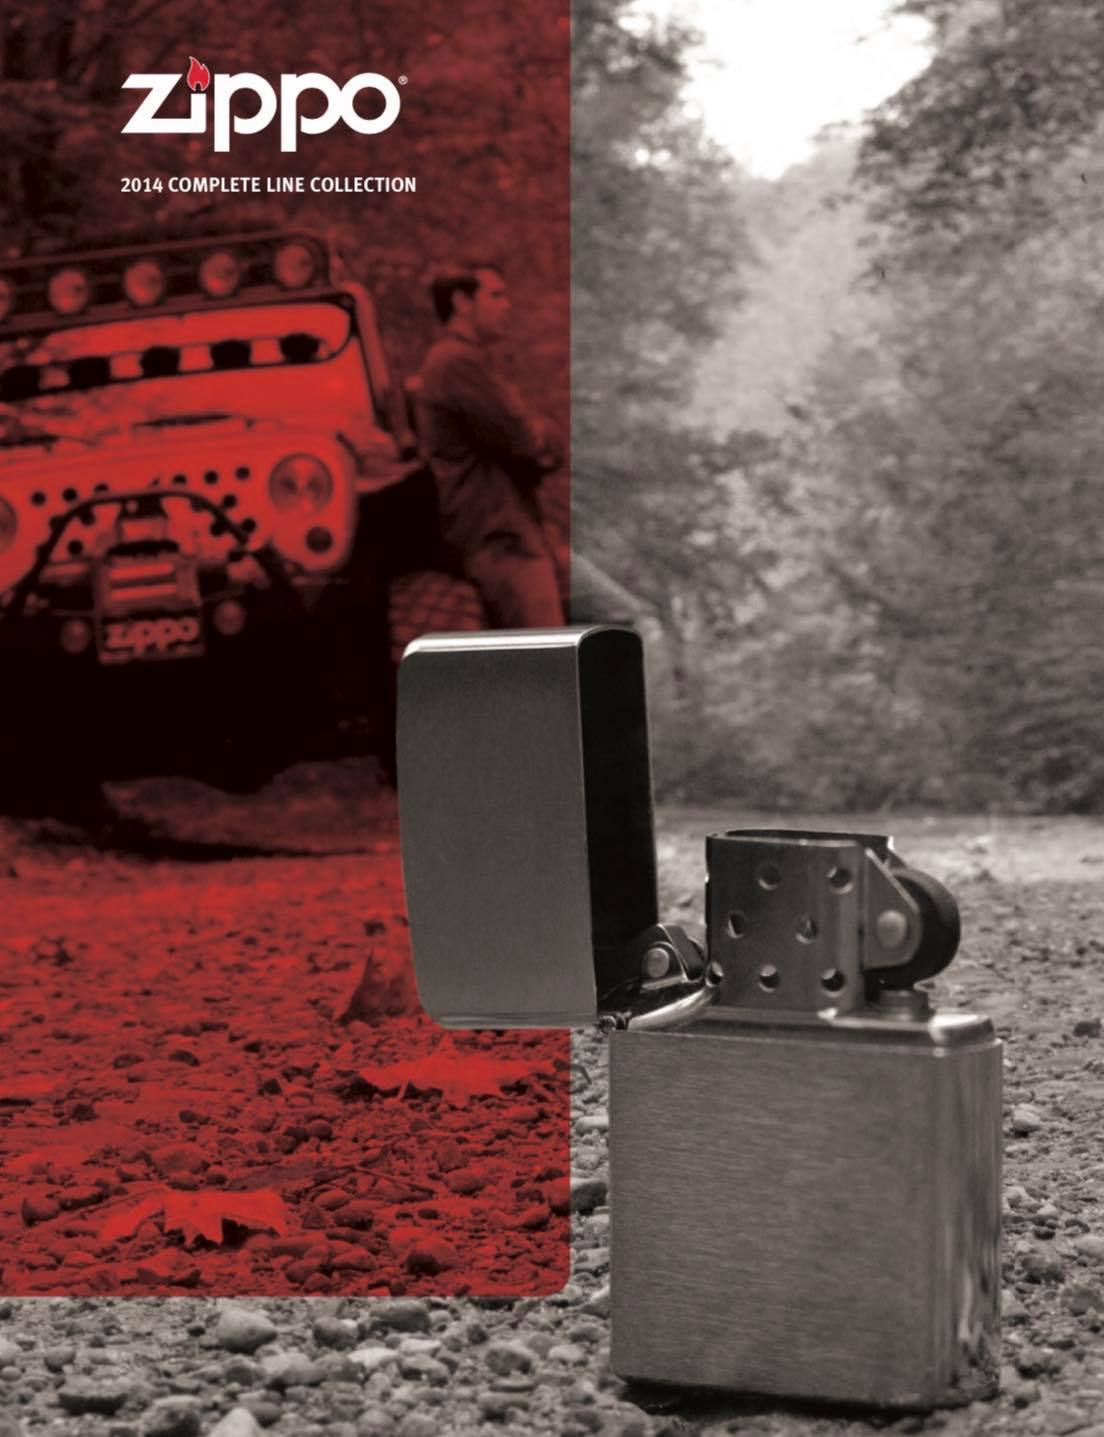 Zippo 2014 Complete Line Collection US